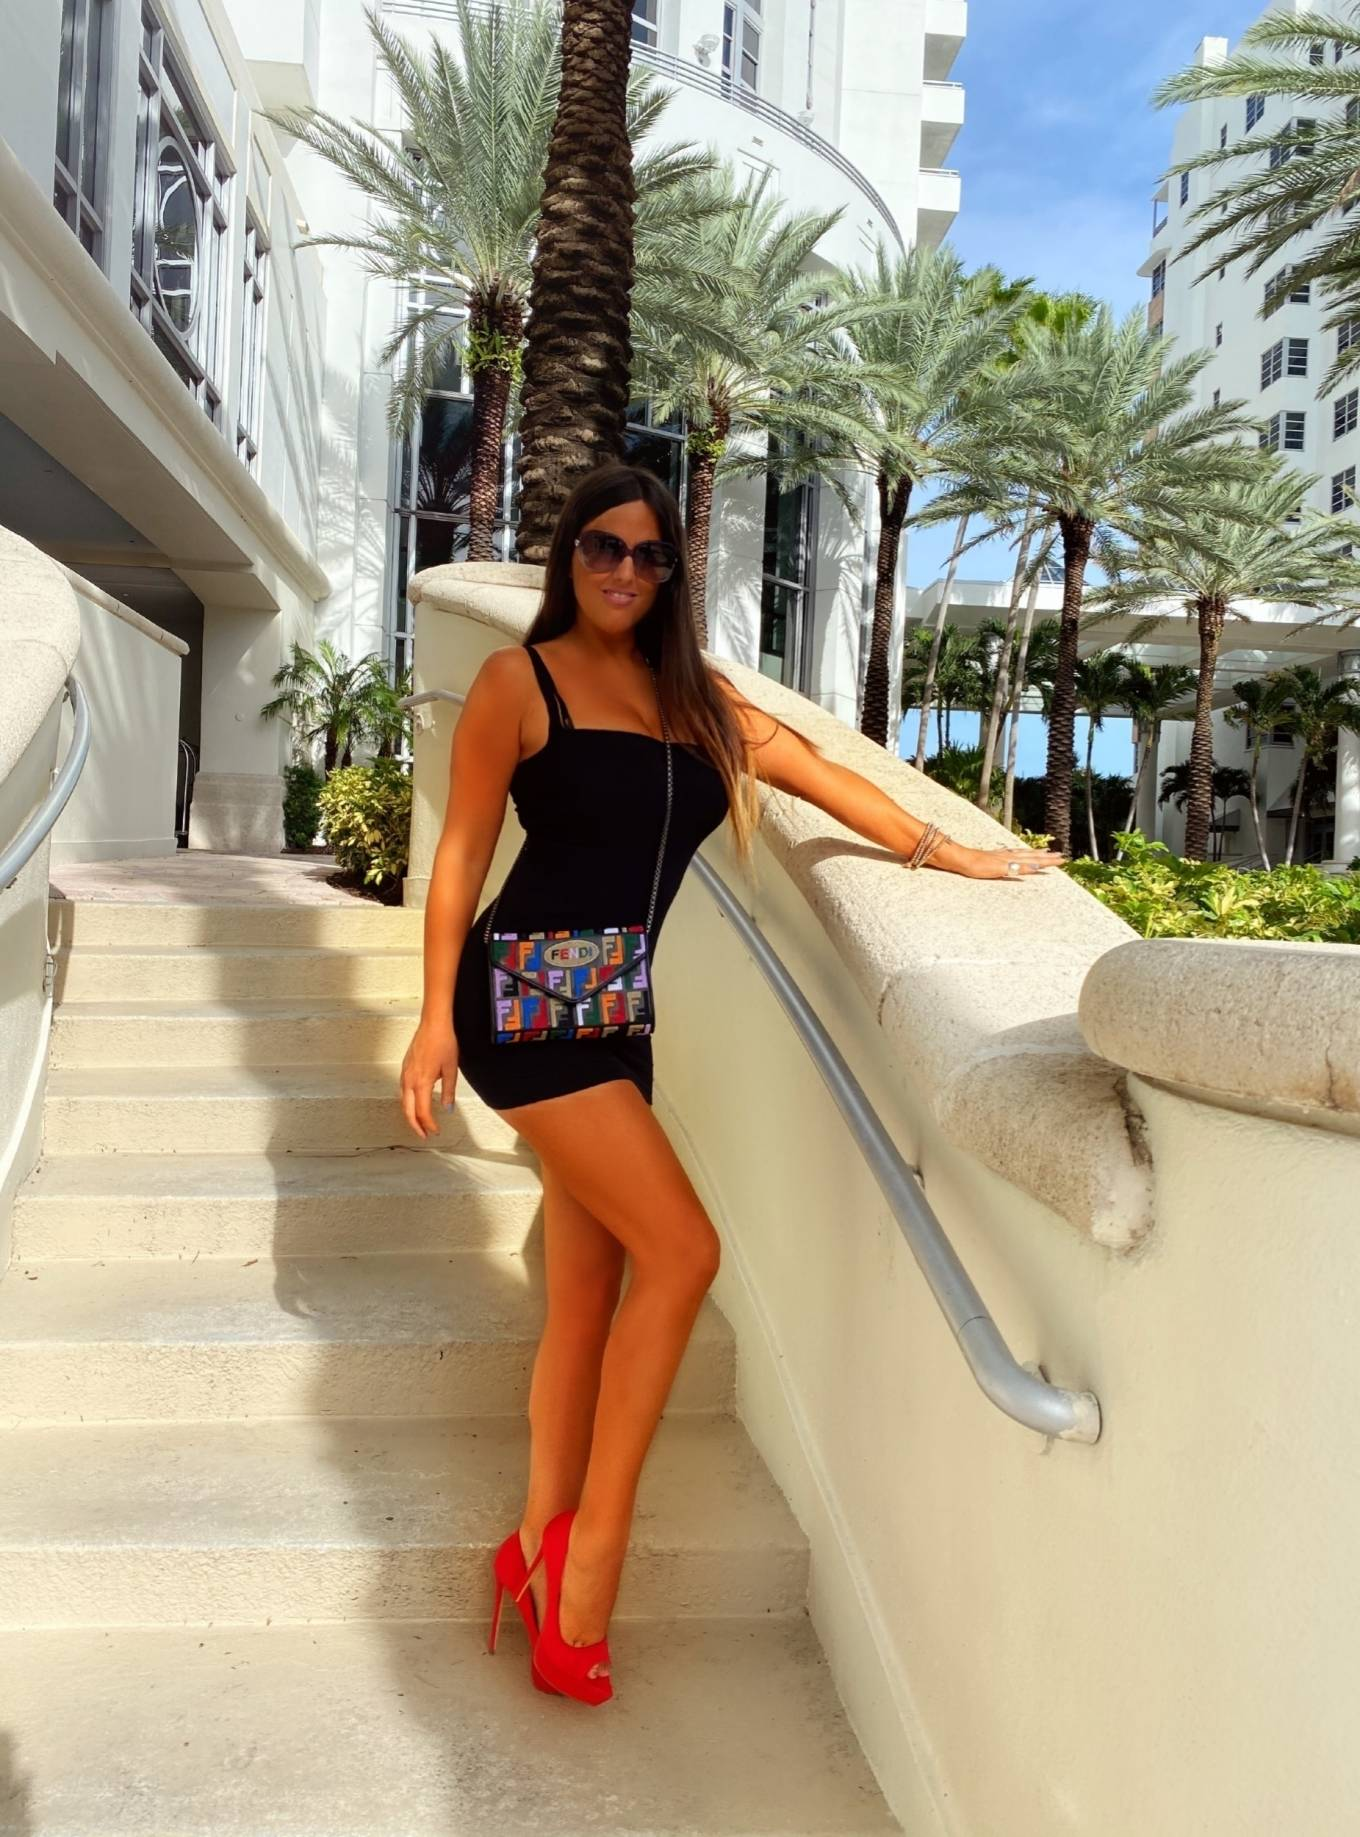 Claudia Romani - Photoshoot for Soro bags and accessories in Maimi Beach